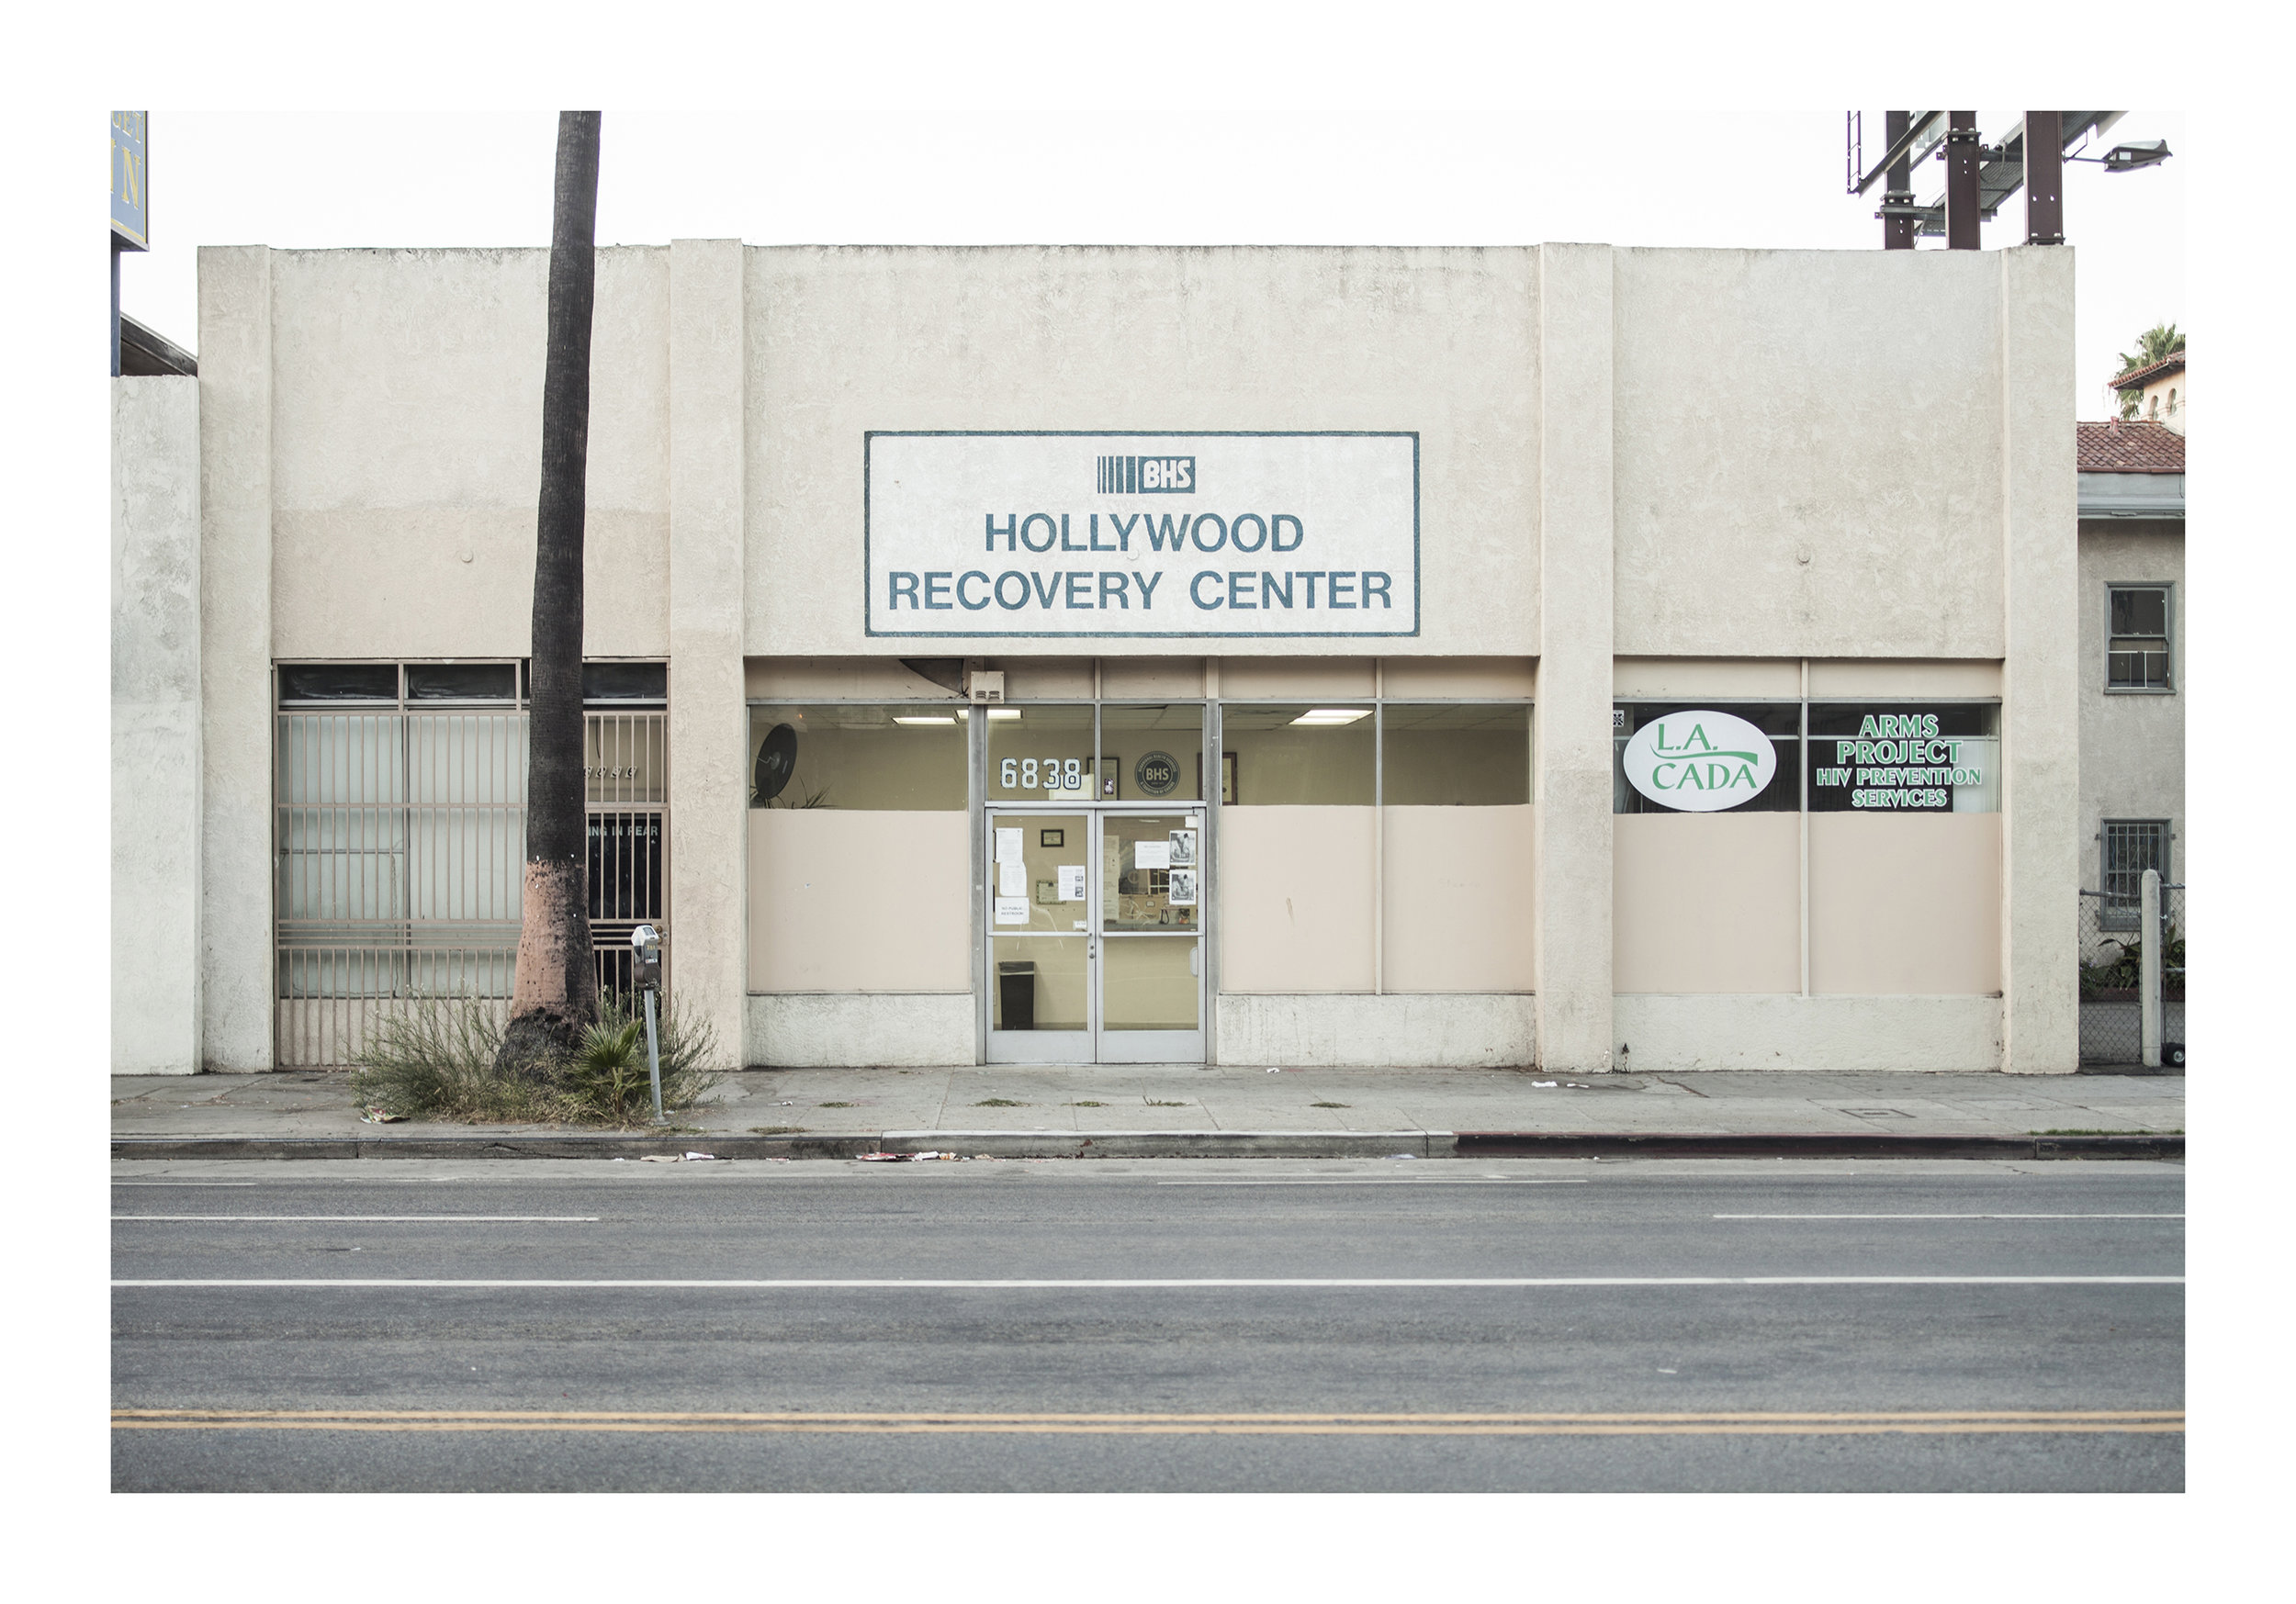 Hollywood Recovery Center Los Angeles, California 2016